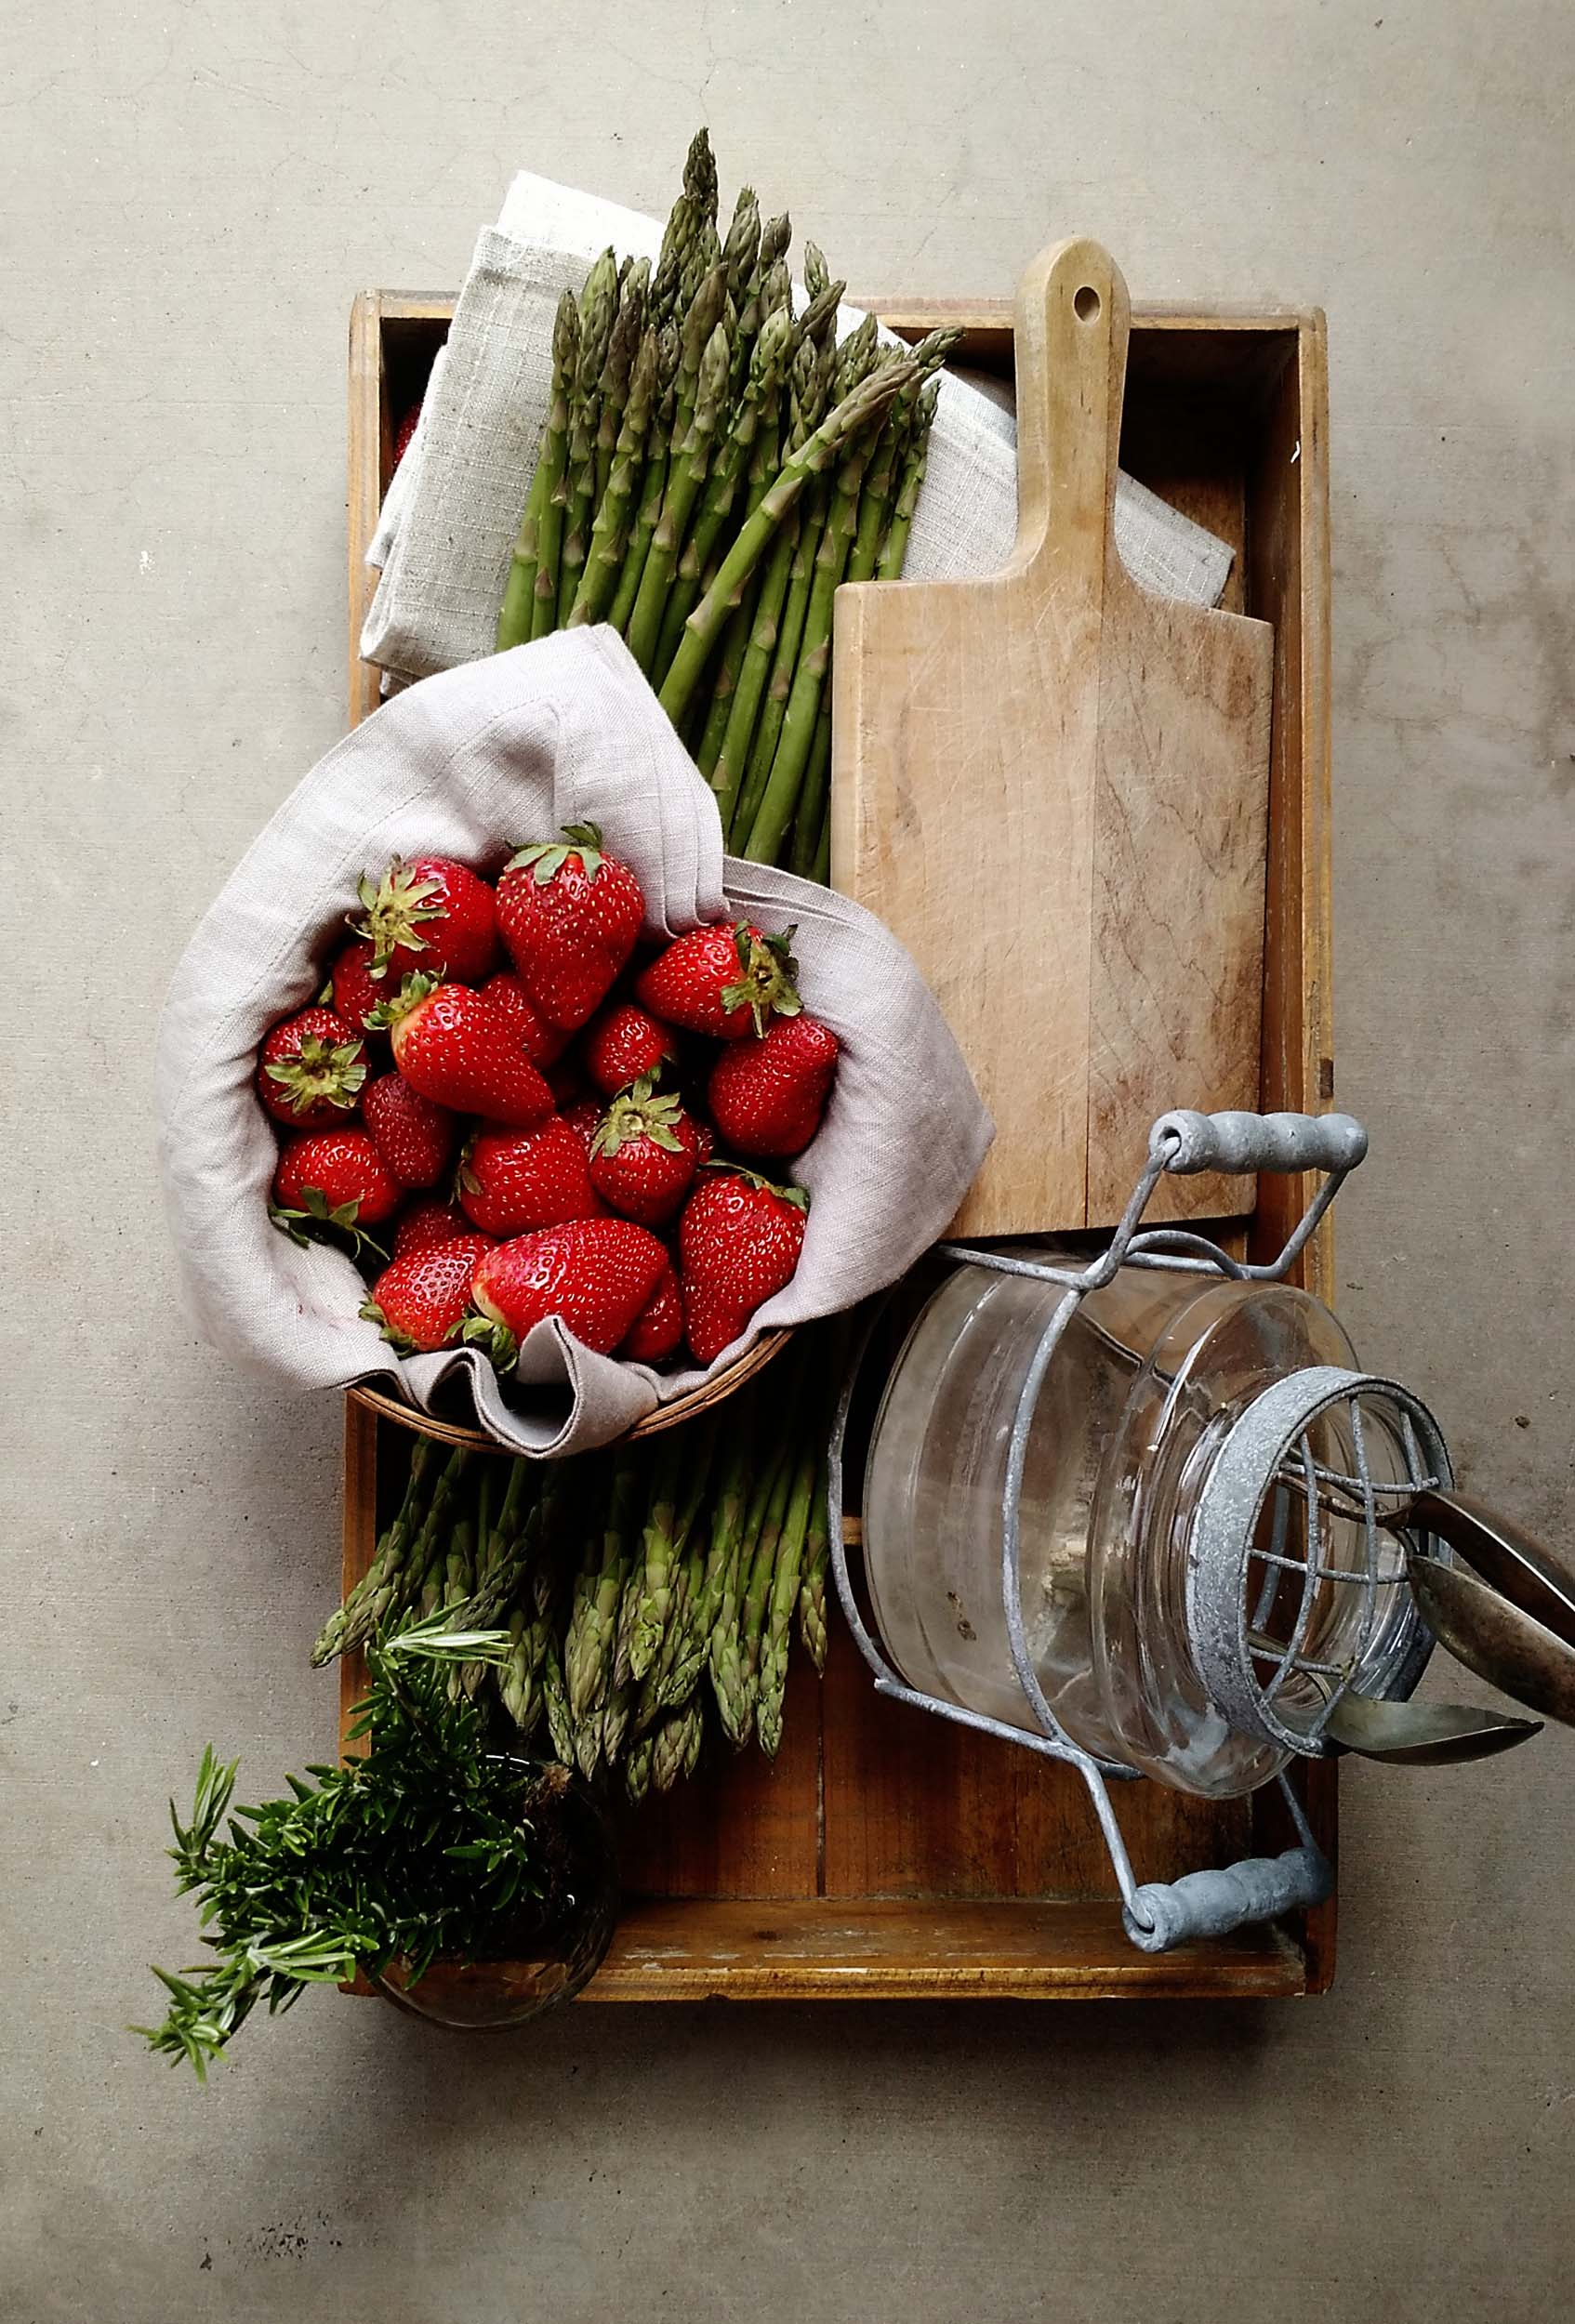 strawberries and asparagus.jpg